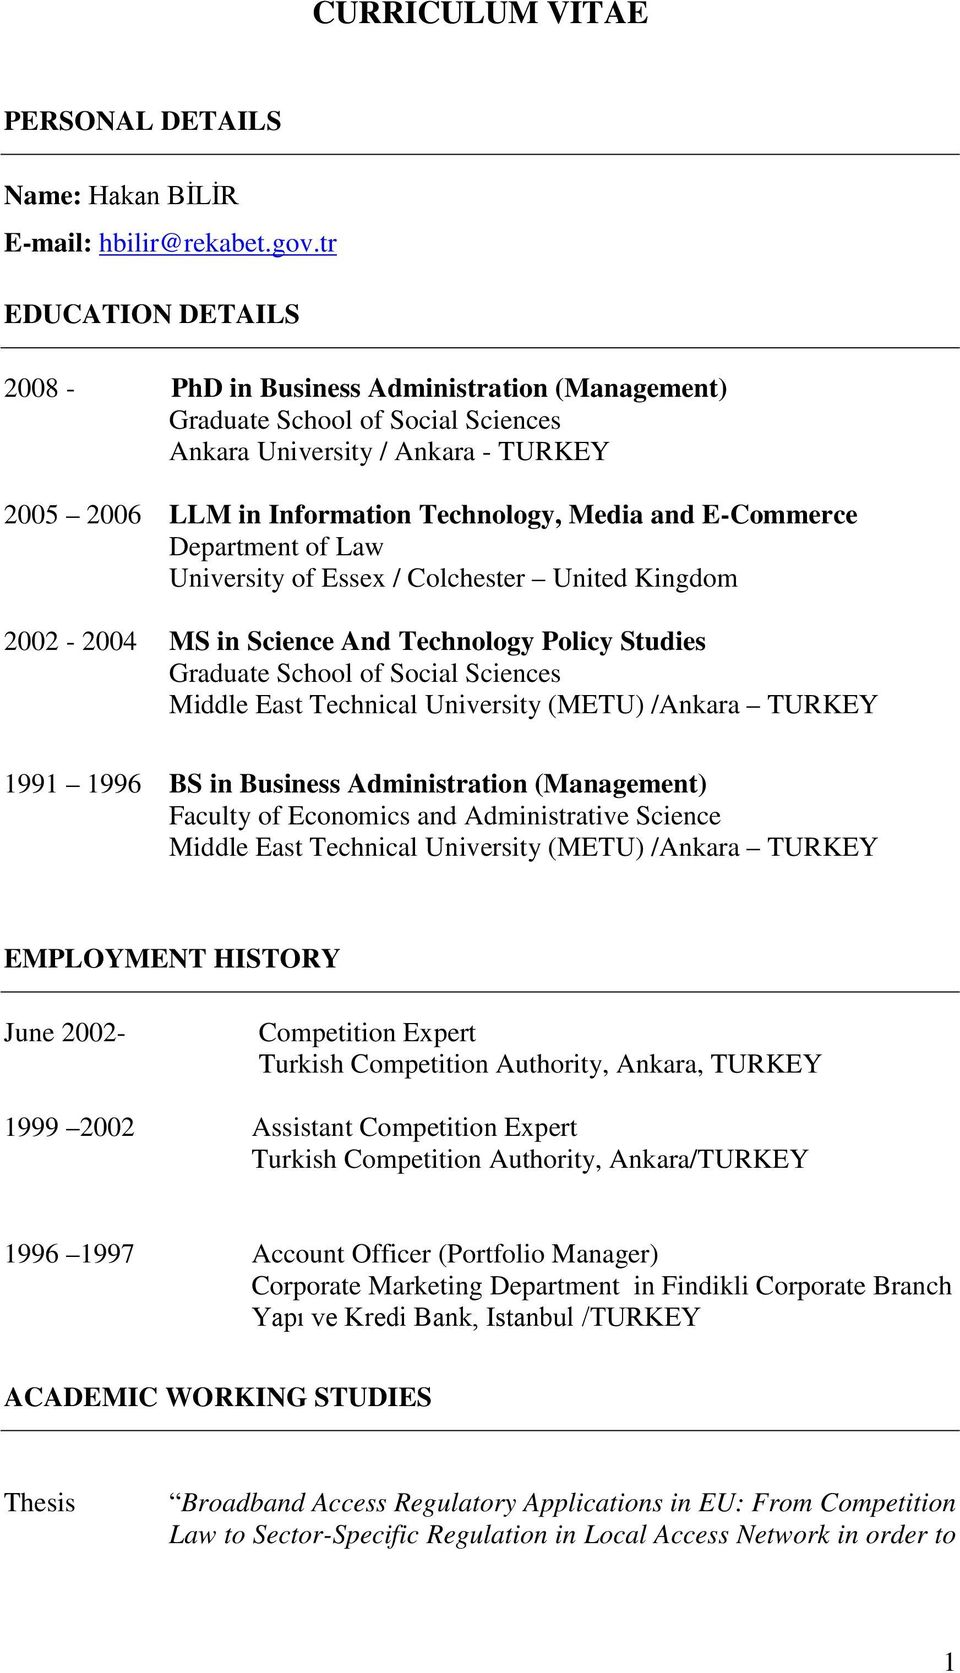 E-Commerce Department of Law University of Essex / Colchester United Kingdom 2002-2004 MS in Science And Technology Policy Studies Graduate School of Social Sciences Middle East Technical University